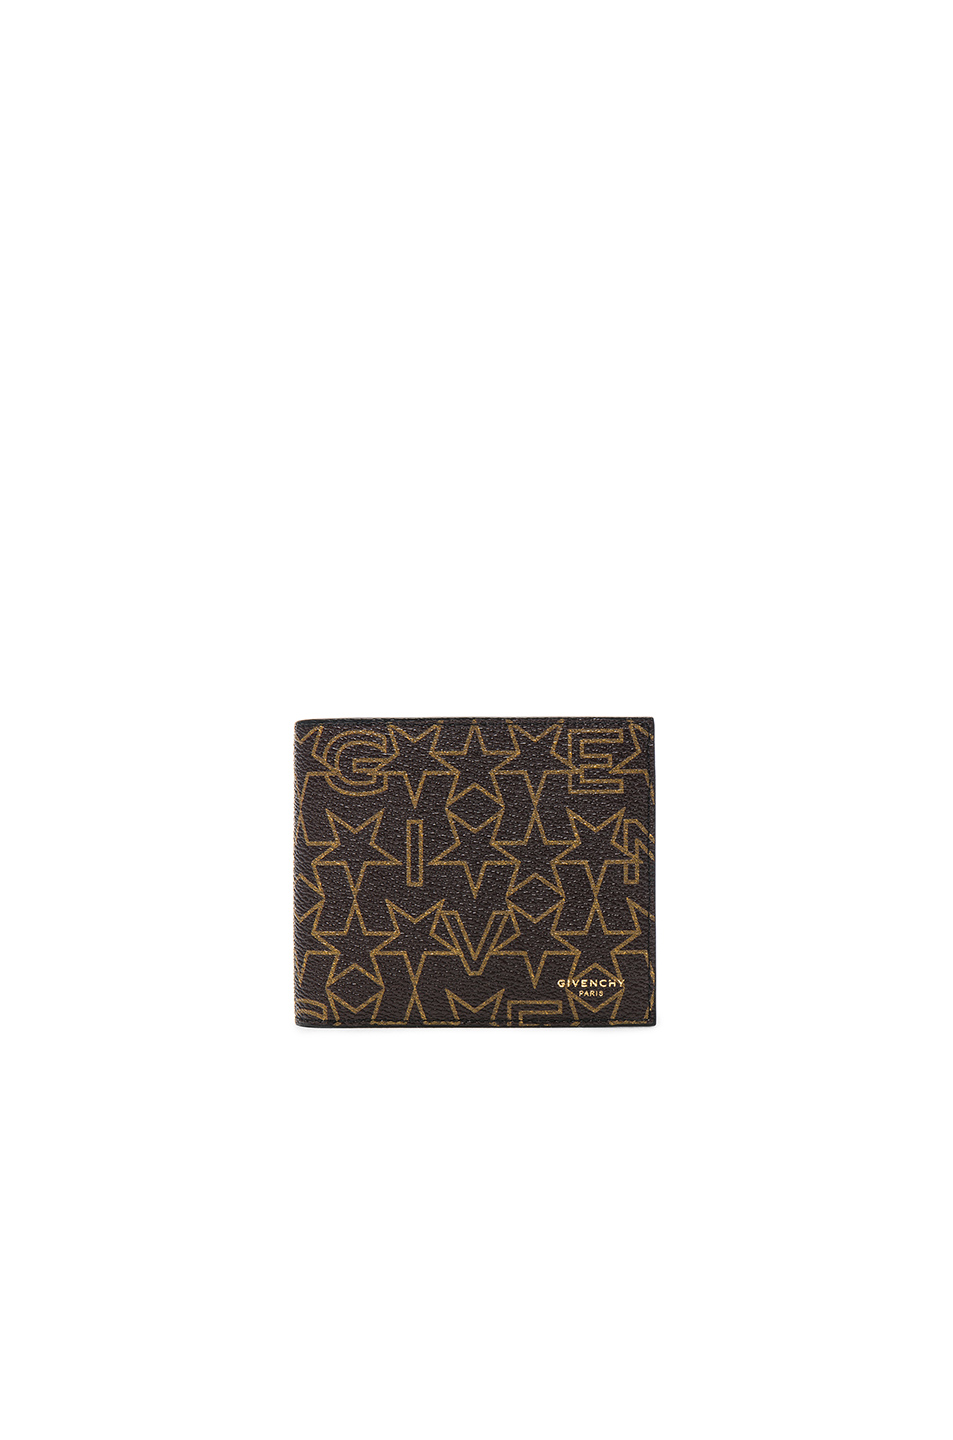 Givenchy Printed Billfold Wallet in Brown,Geometric Print